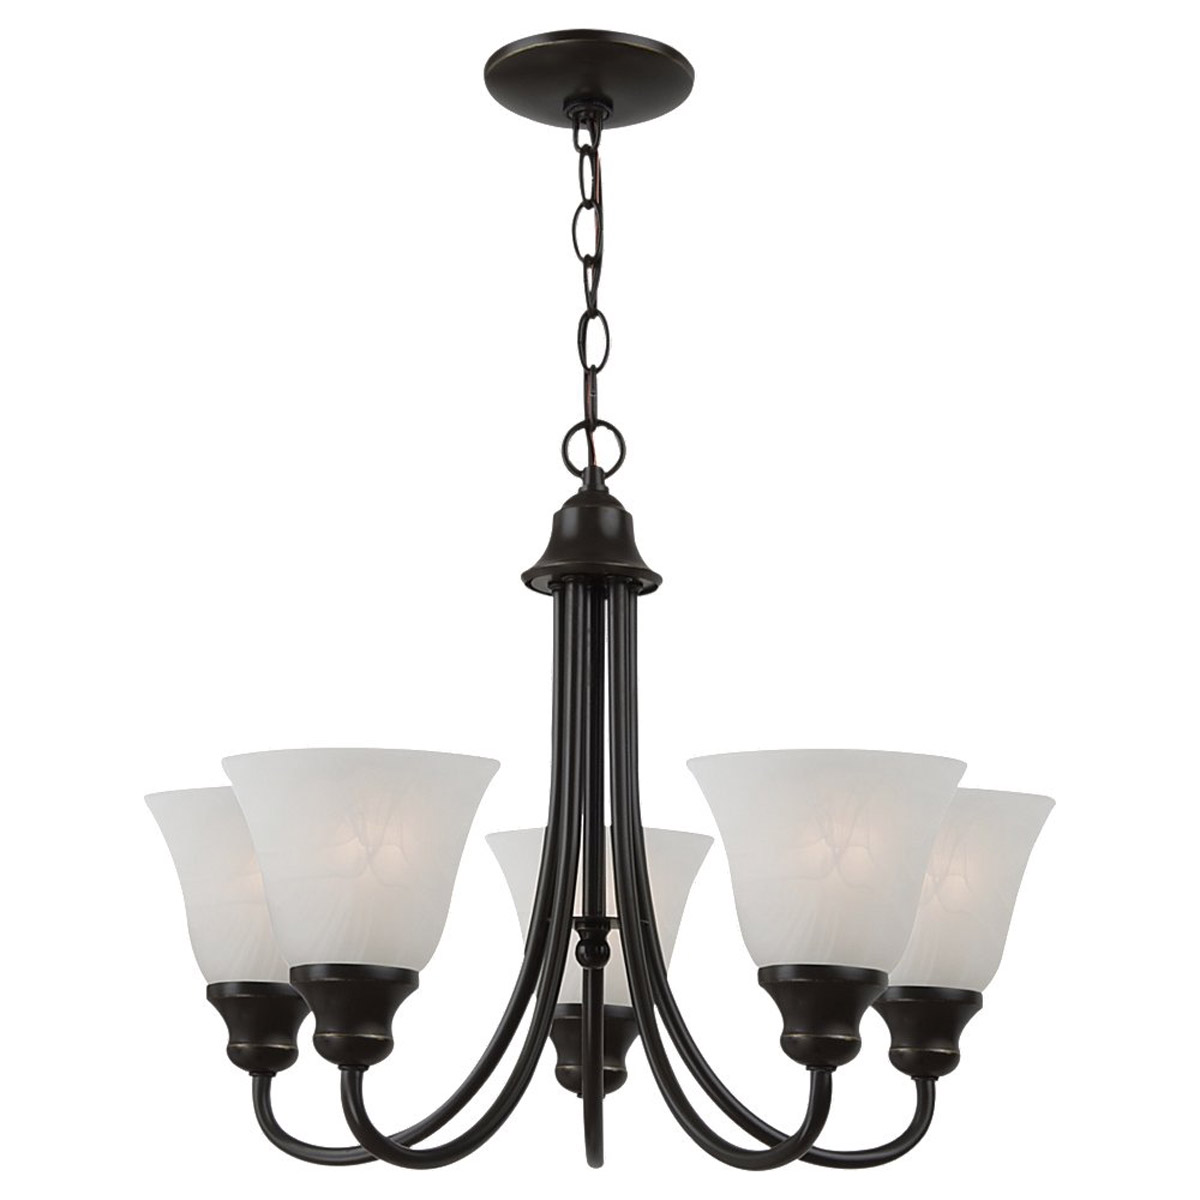 Sea Gull Lighting Windgate 5 Light Chandelier in Heirloom Bronze 35940BLE-782